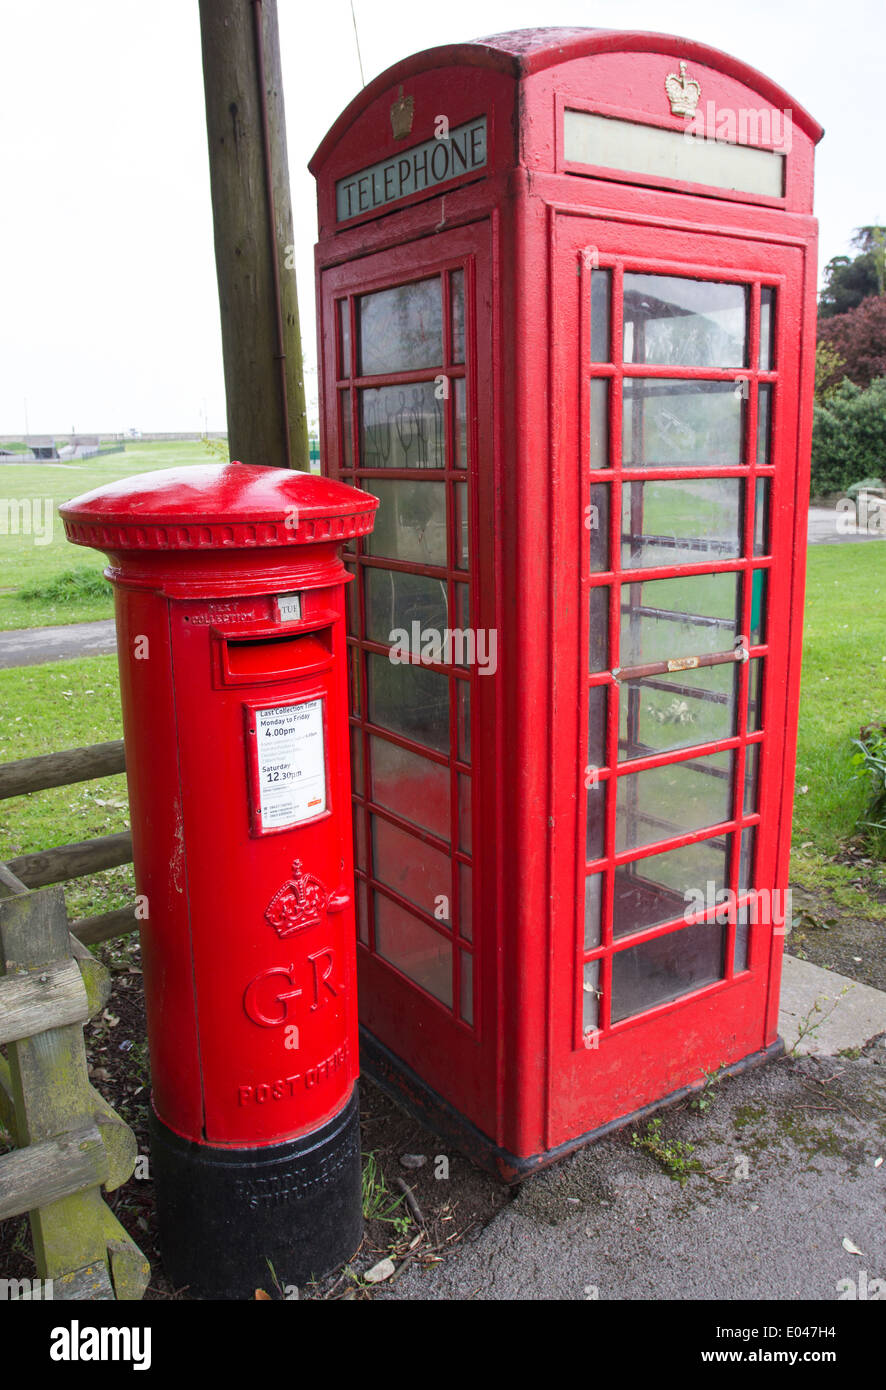 A red classic English phone box and post box in Clevedon, North Somerset, England, UK - Stock Image